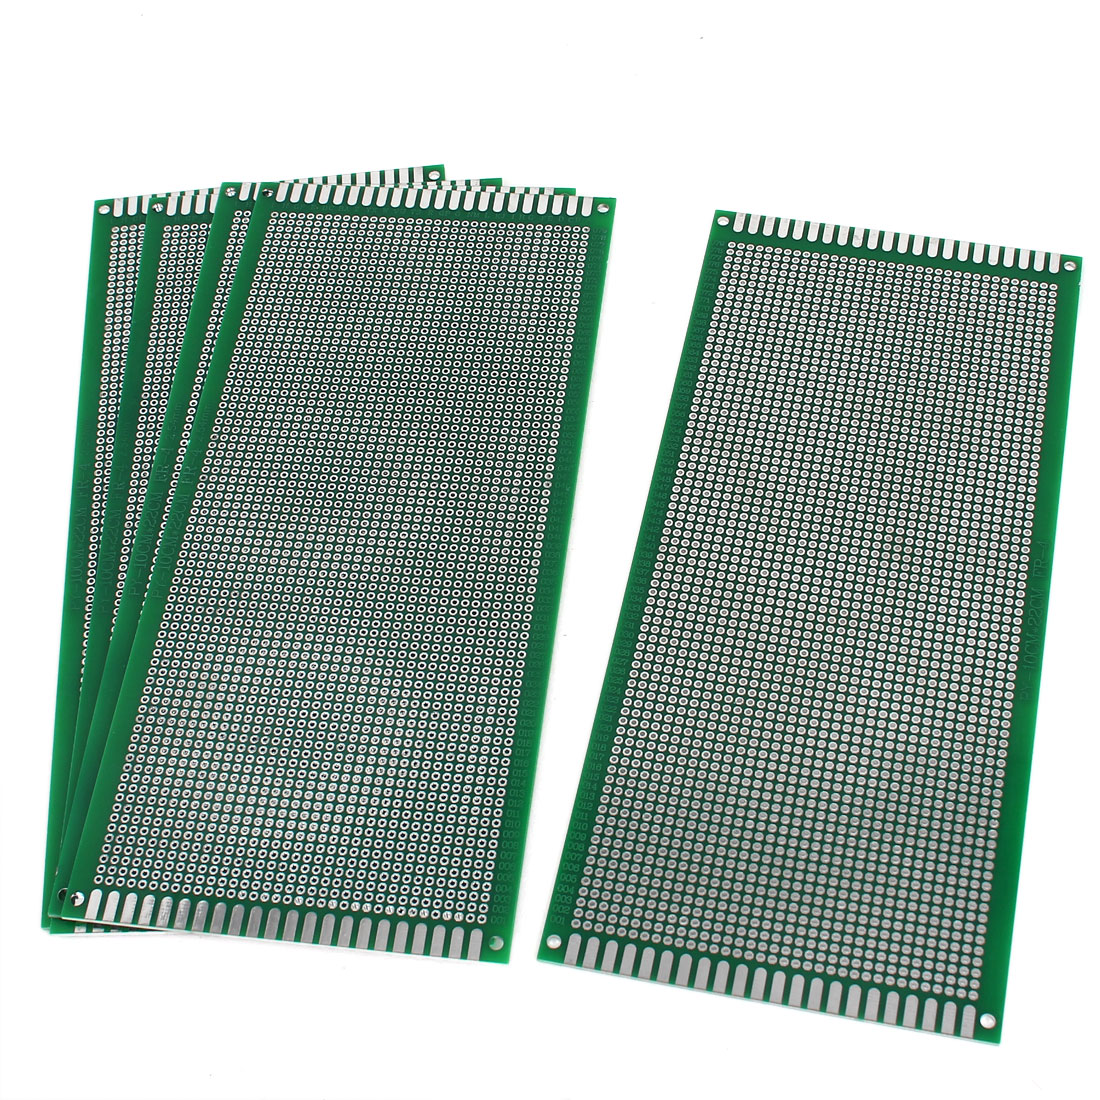 5pcs 10cm x 22cm Rectangle Double Sided Universal DIY Prototyping Paper PCB Print Circuit Board